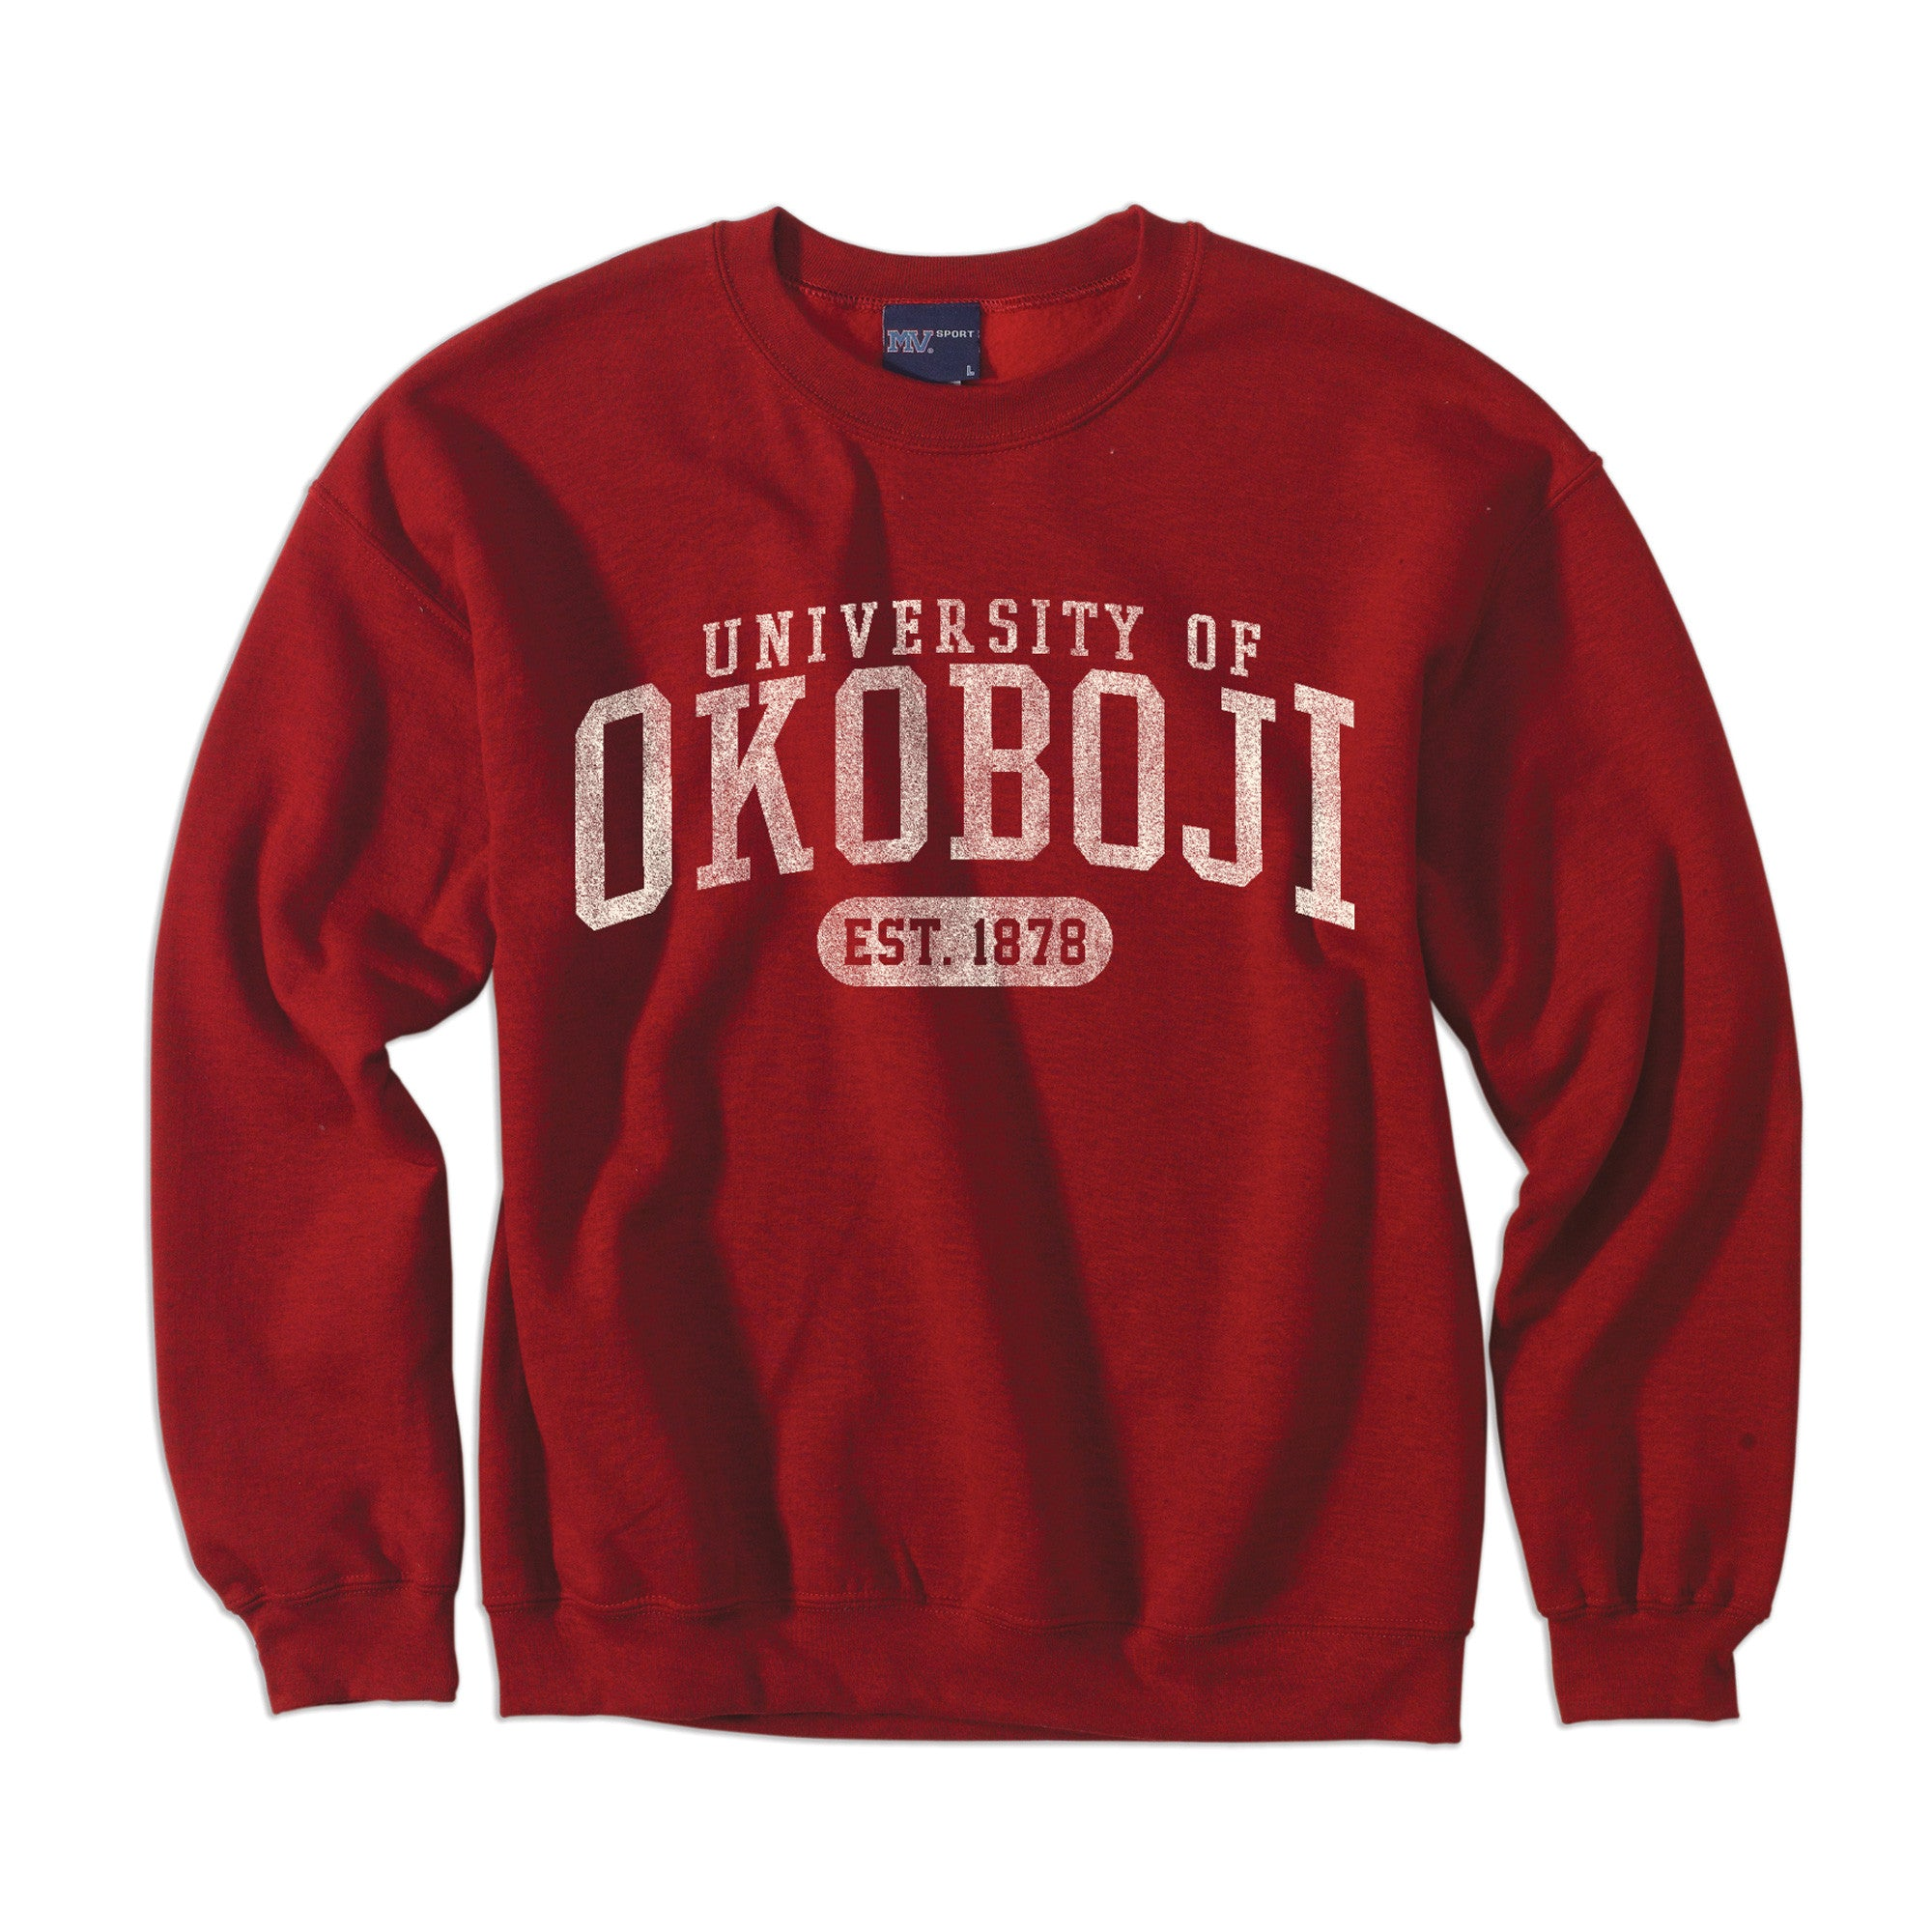 University of Okoboji Comfort Fleece Crew - Heathered Red